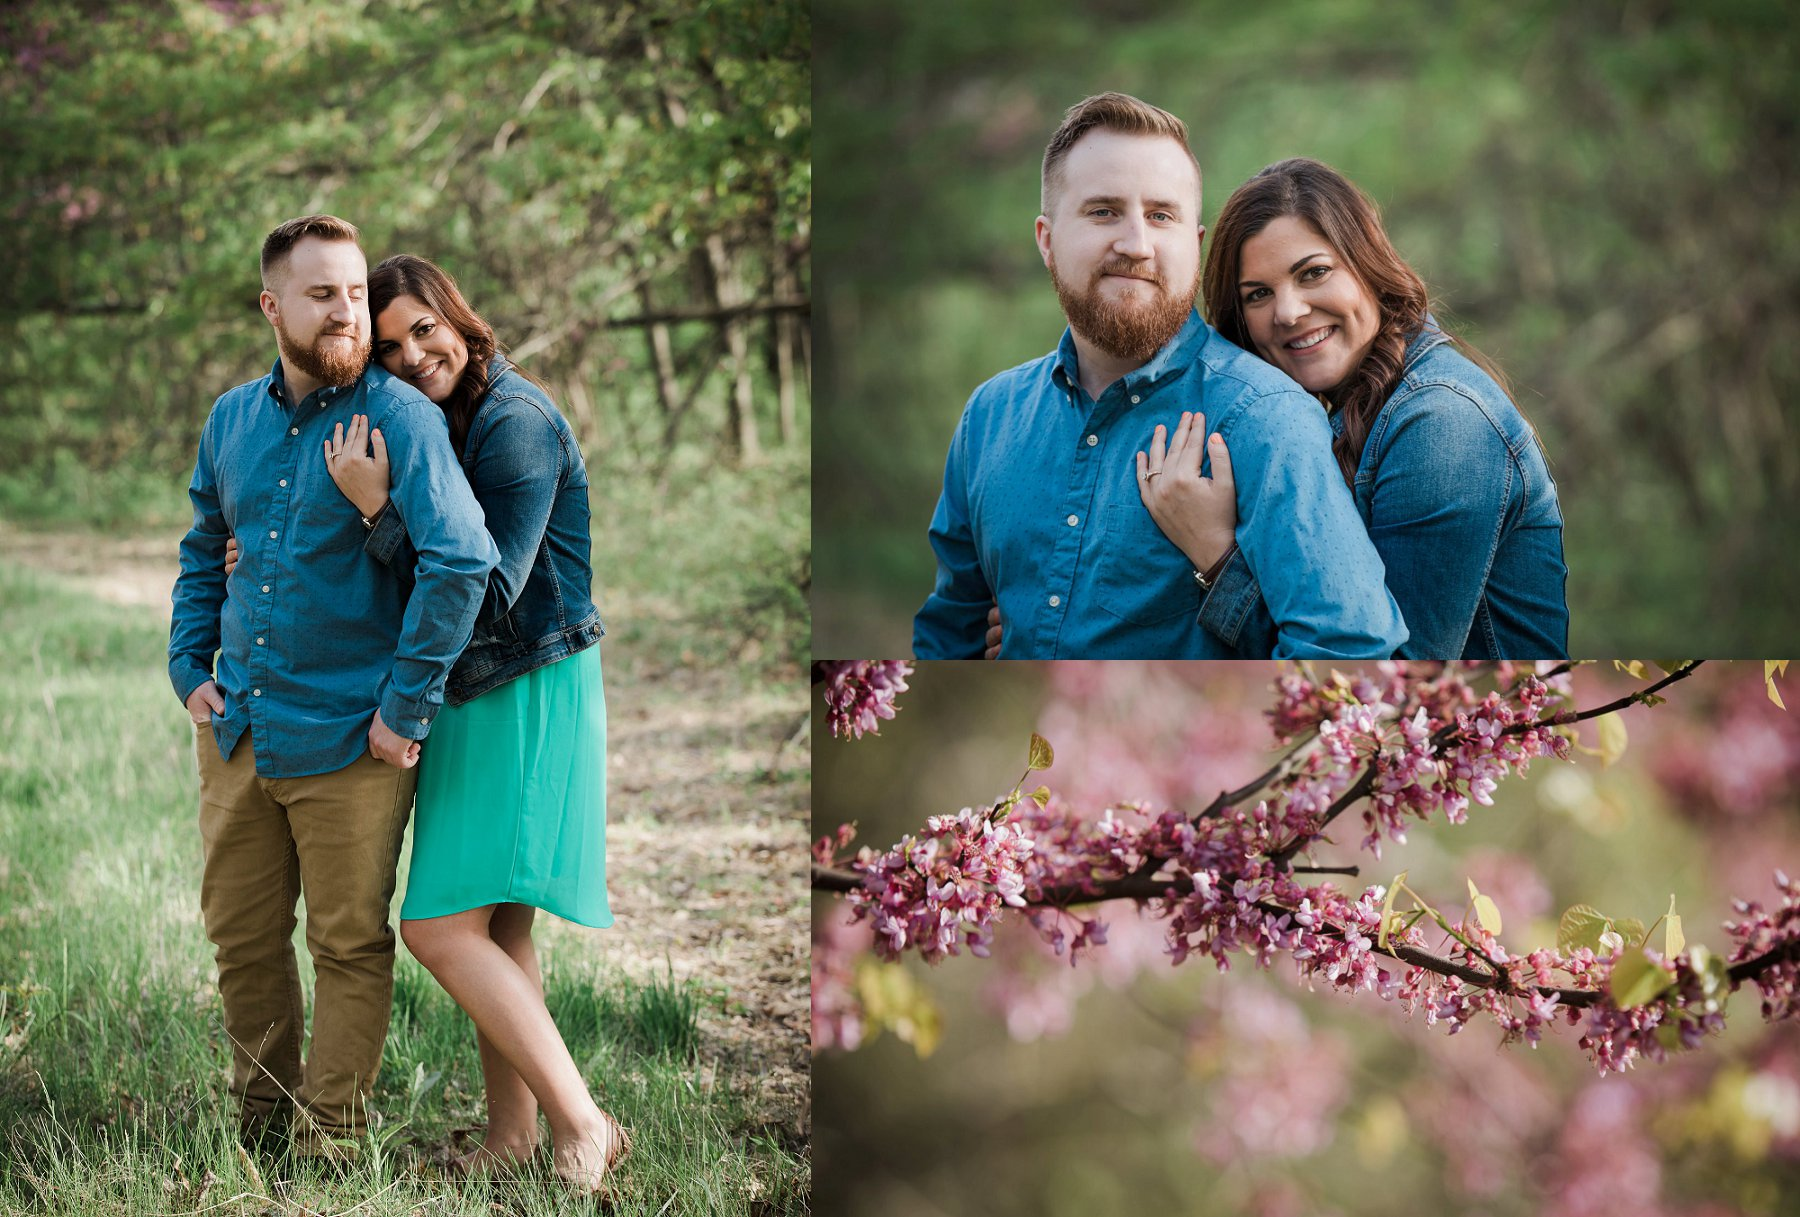 Spring Engagement Photography in Kansas City by Merry Ohler 1